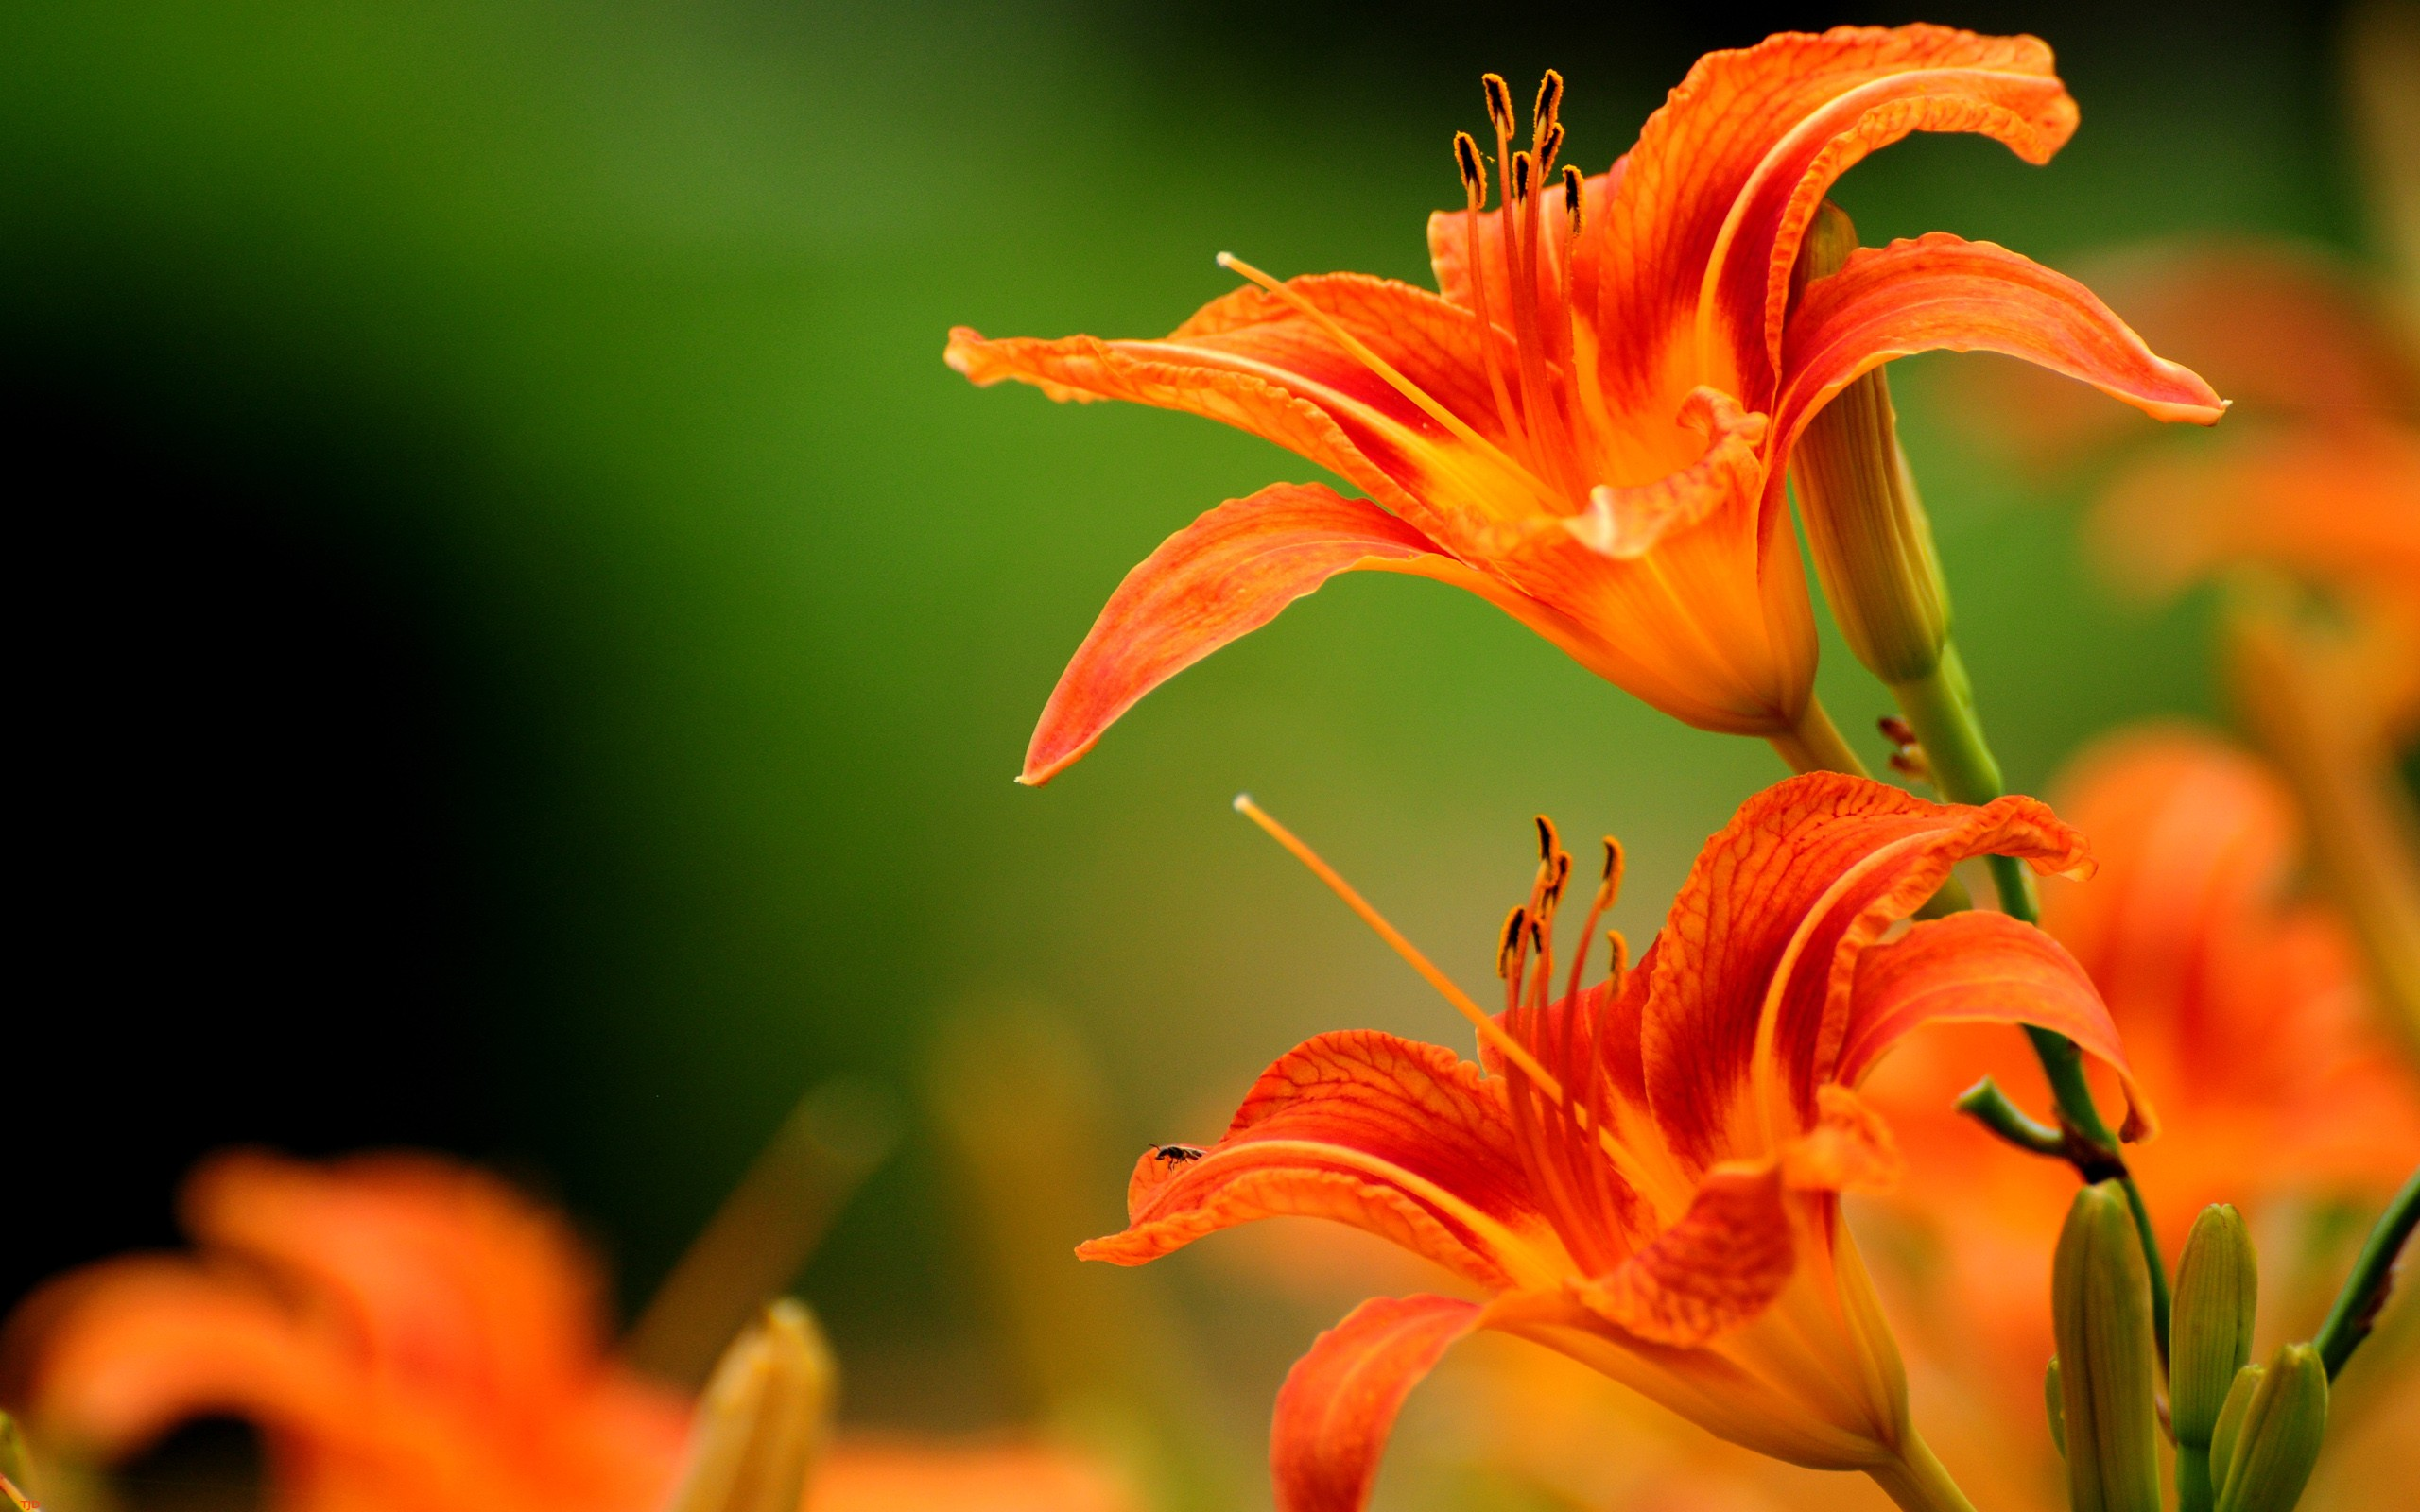 rate select rating give orange flowers 1 5 give orange flowers 2 2560x1600